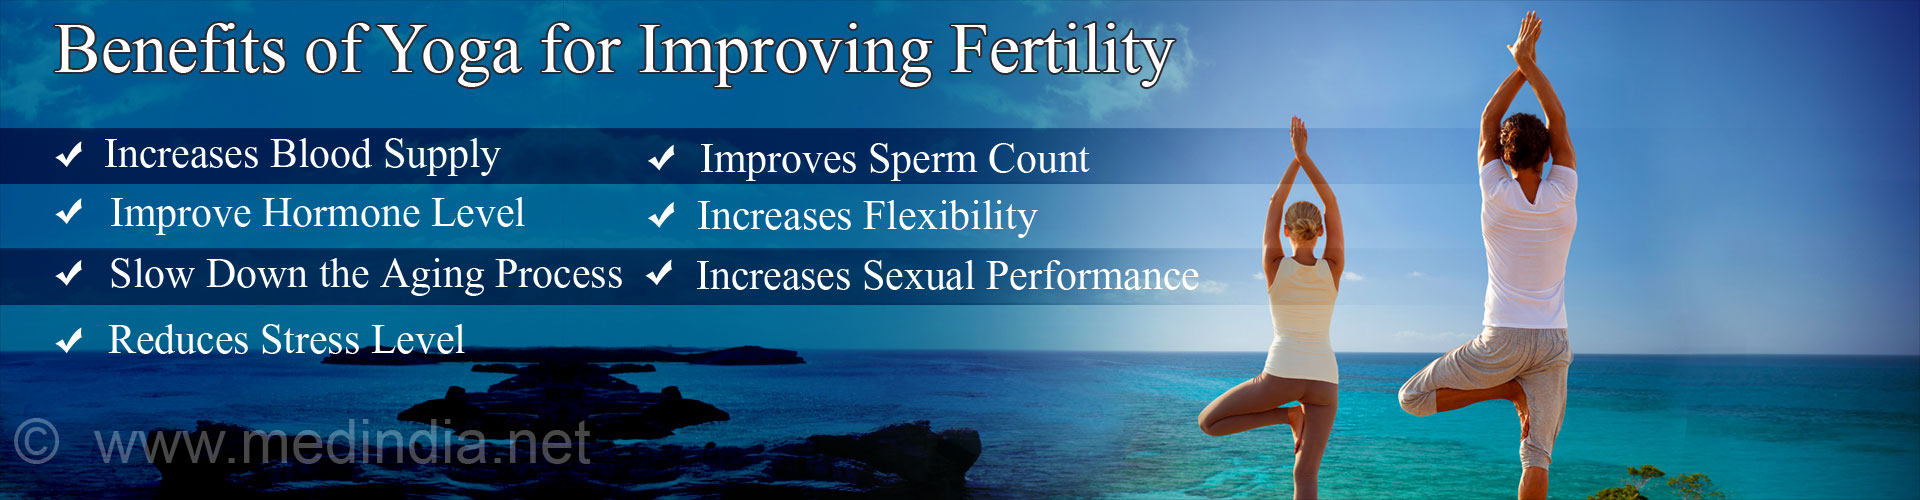 Benefits of Yoga for Improving Fertility